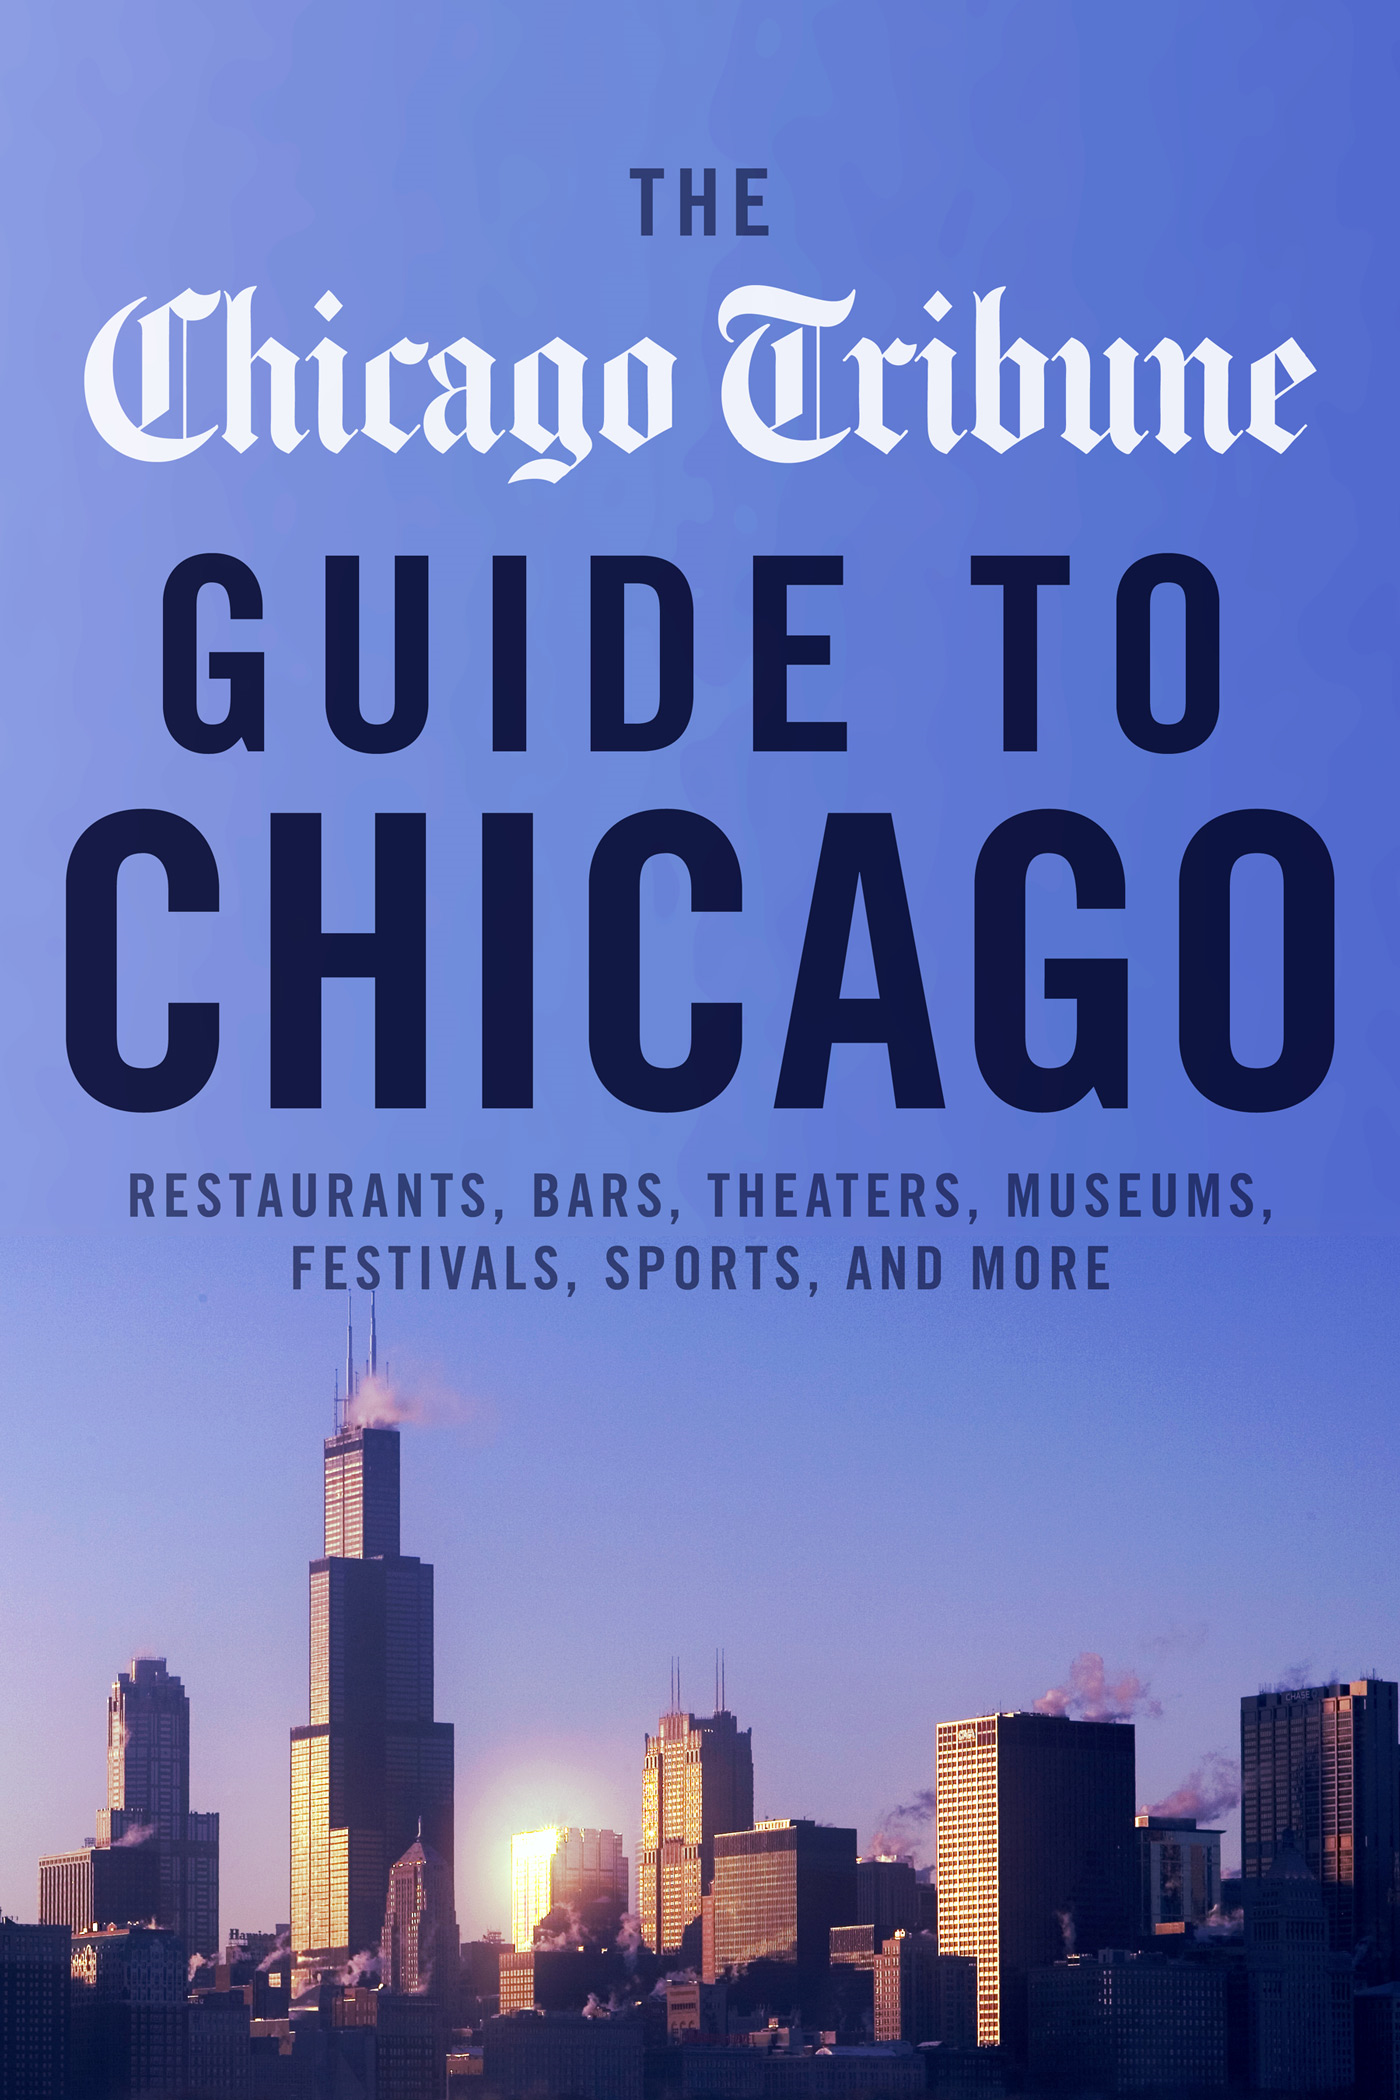 The Chicago Tribune Guide to Chicago